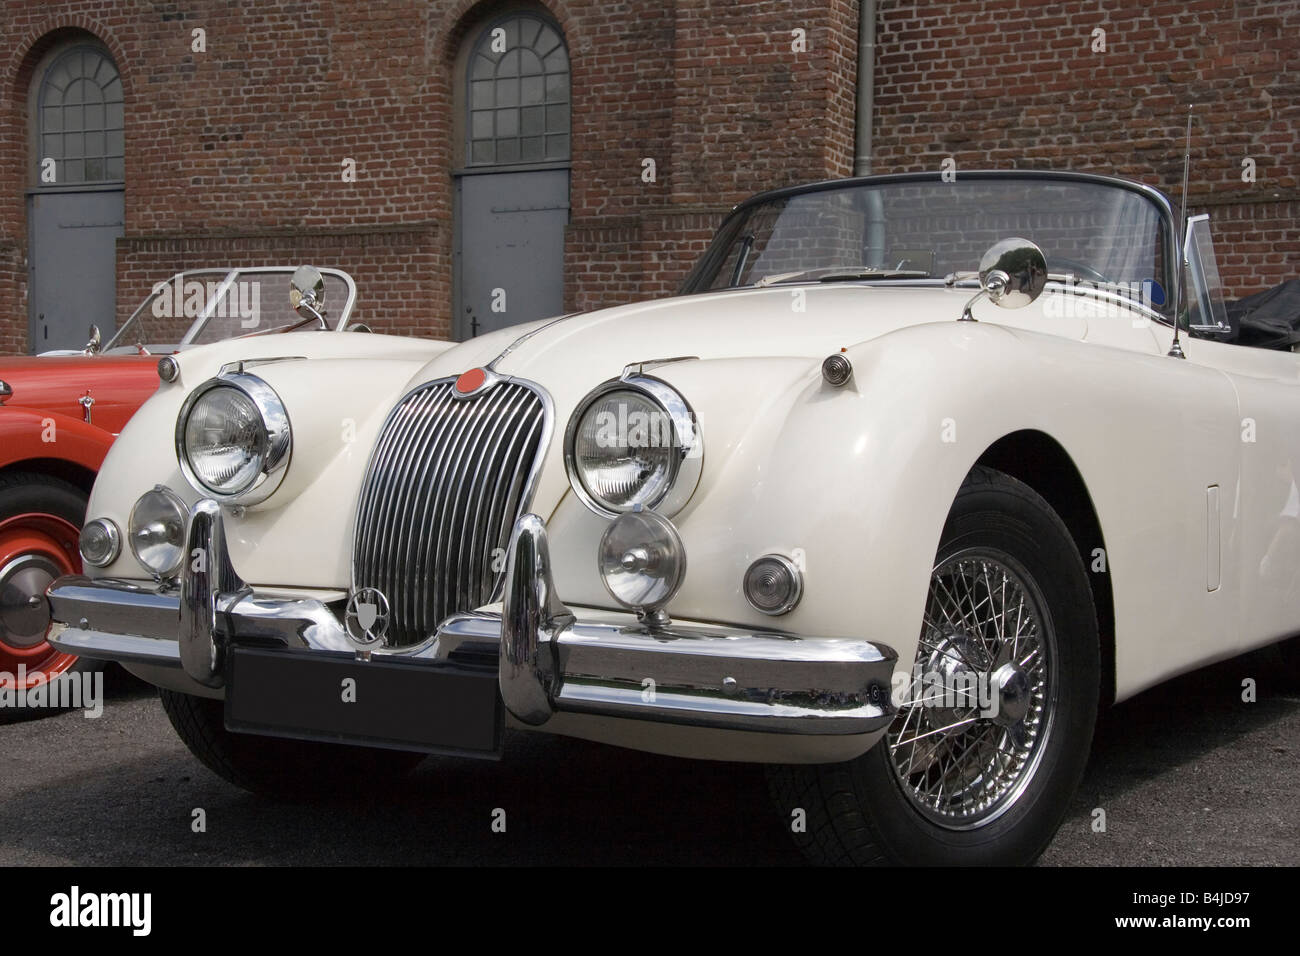 Page 2 Fifties Jaguar High Resolution Stock Photography And Images Alamy